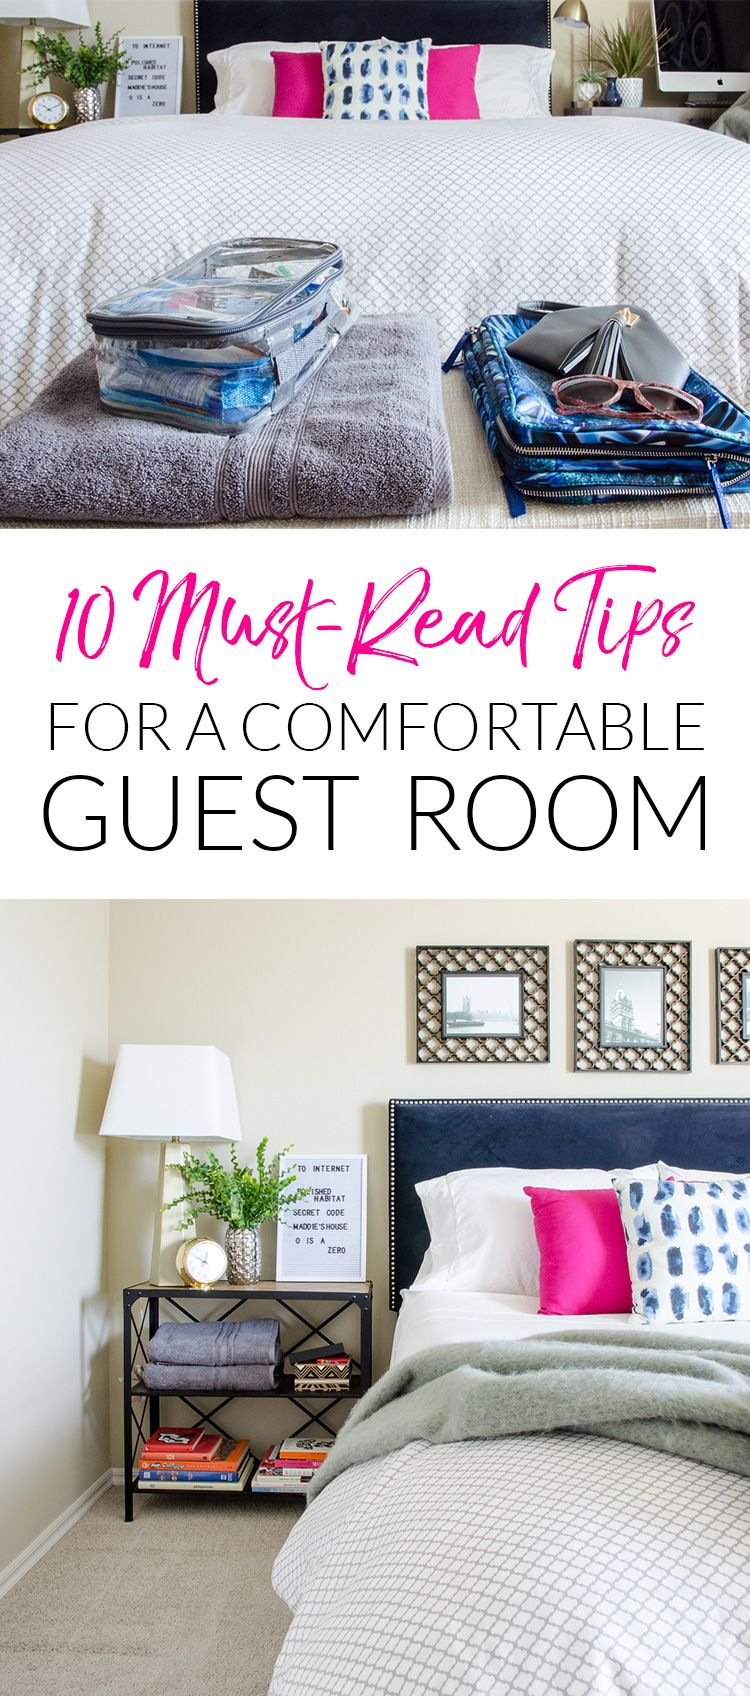 10 Quick Ways to Make Overnight Guests More Comfortable | Big, Room ...